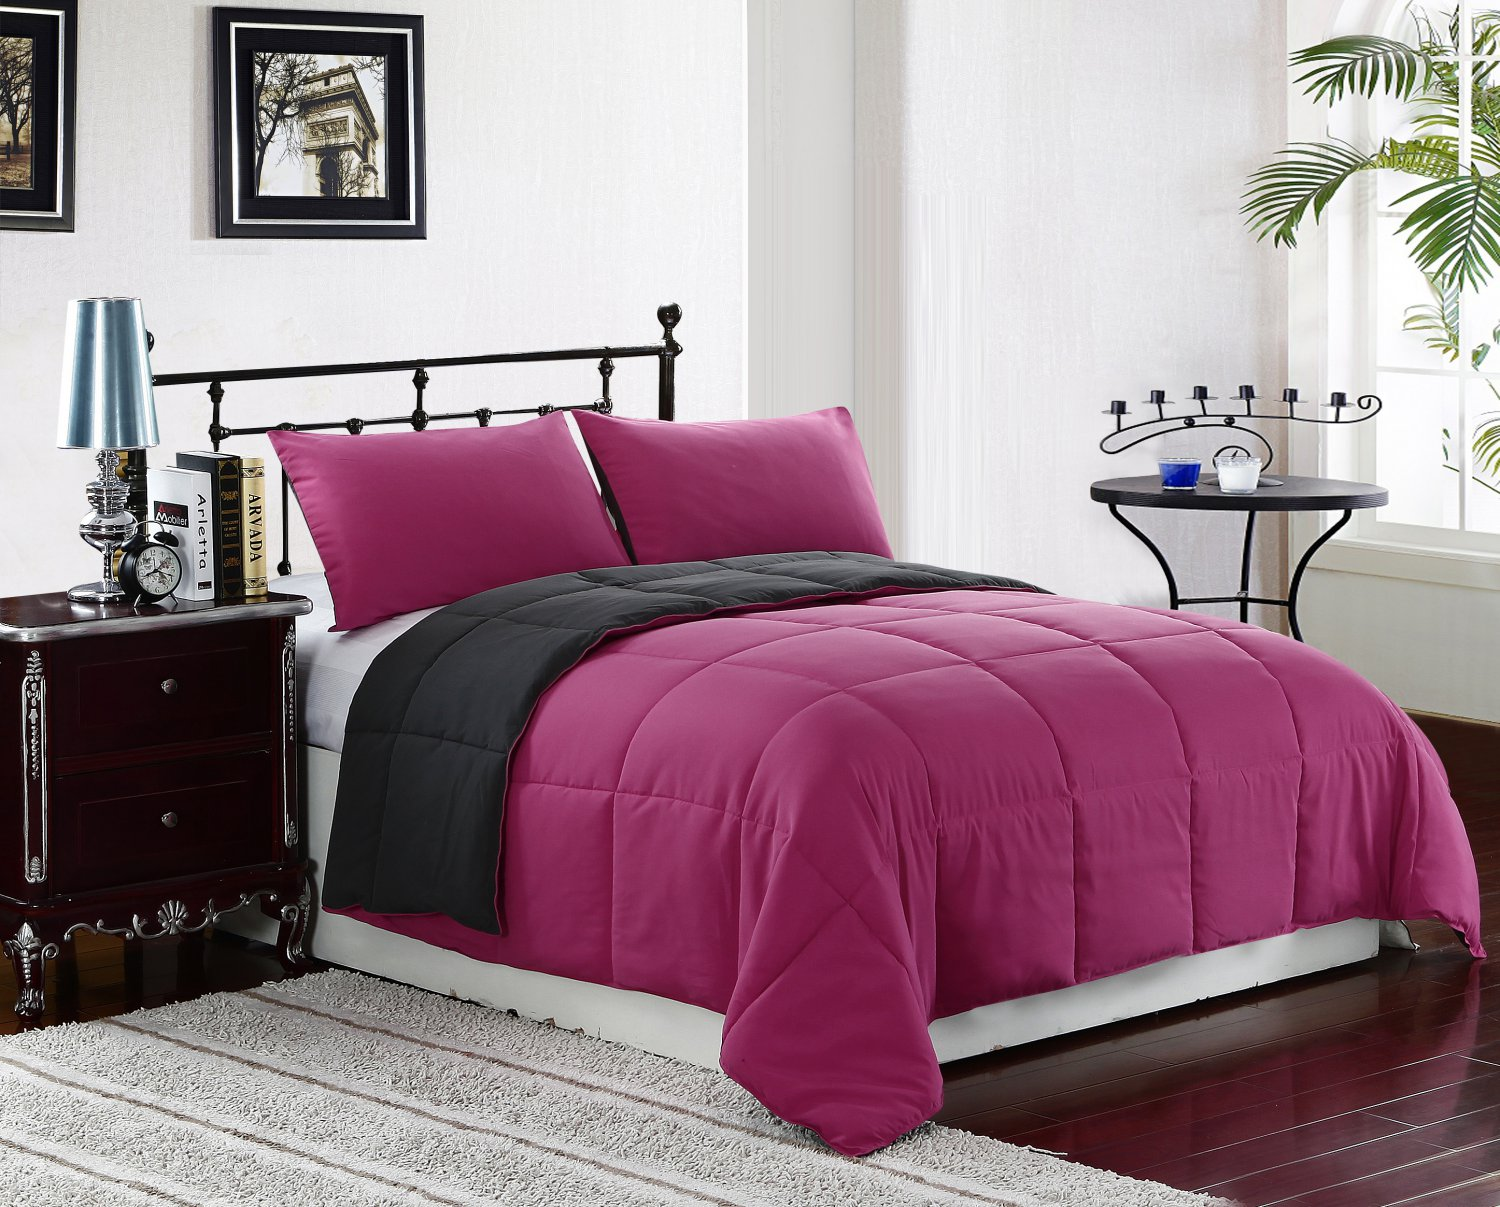 queen full size bed 3pc reversible down alternative comforter set pink grey bedding. Black Bedroom Furniture Sets. Home Design Ideas